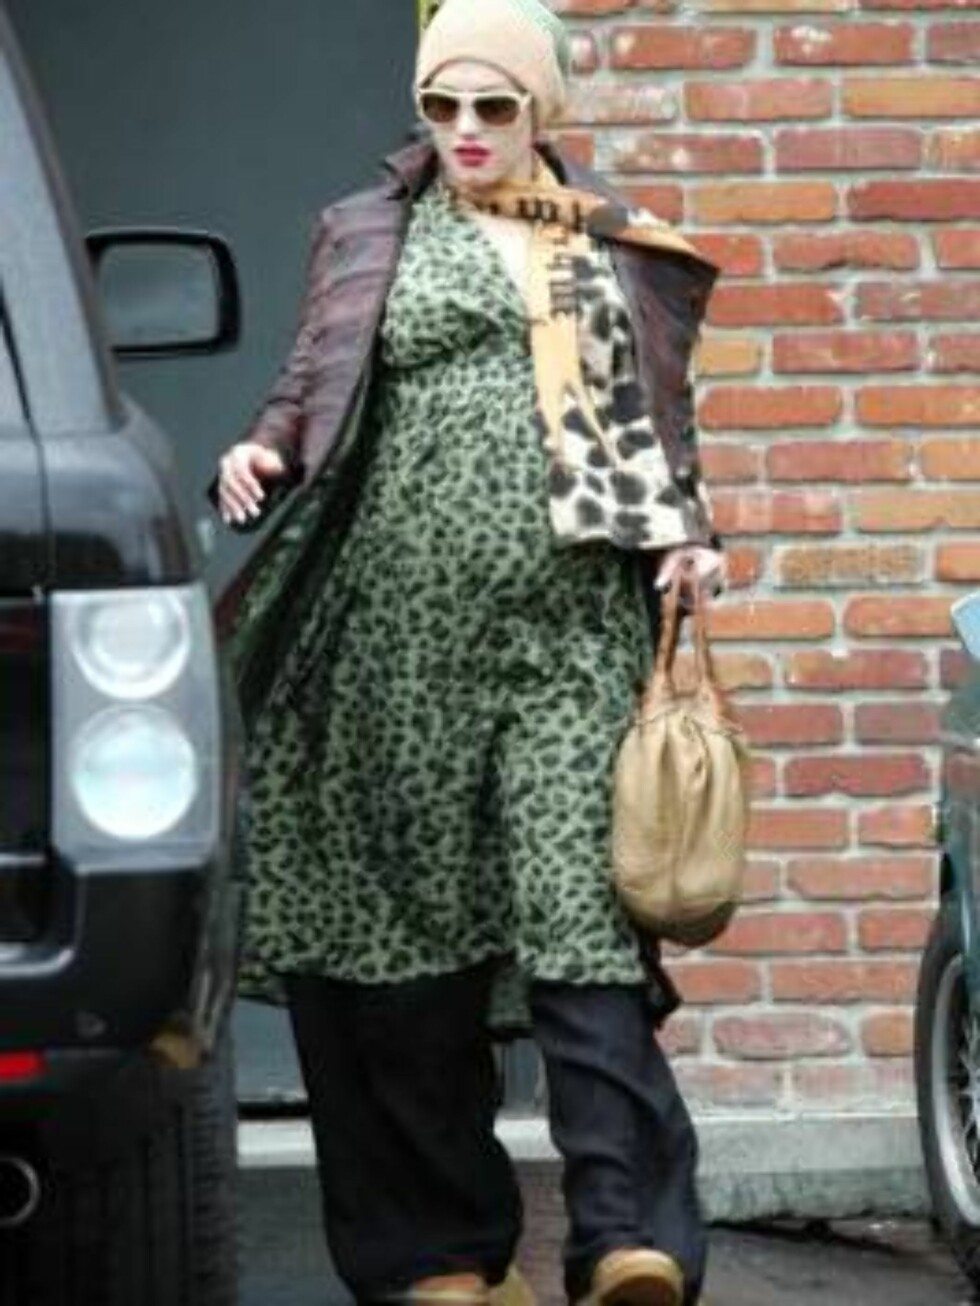 Pregnant Gwen Stefani is experimenting extreme leopard funky maternity style in Los Feliz, California. April 14, 2006 X17agency EXCLUSIVE / ALL OVER PRESS Foto: All Over Press